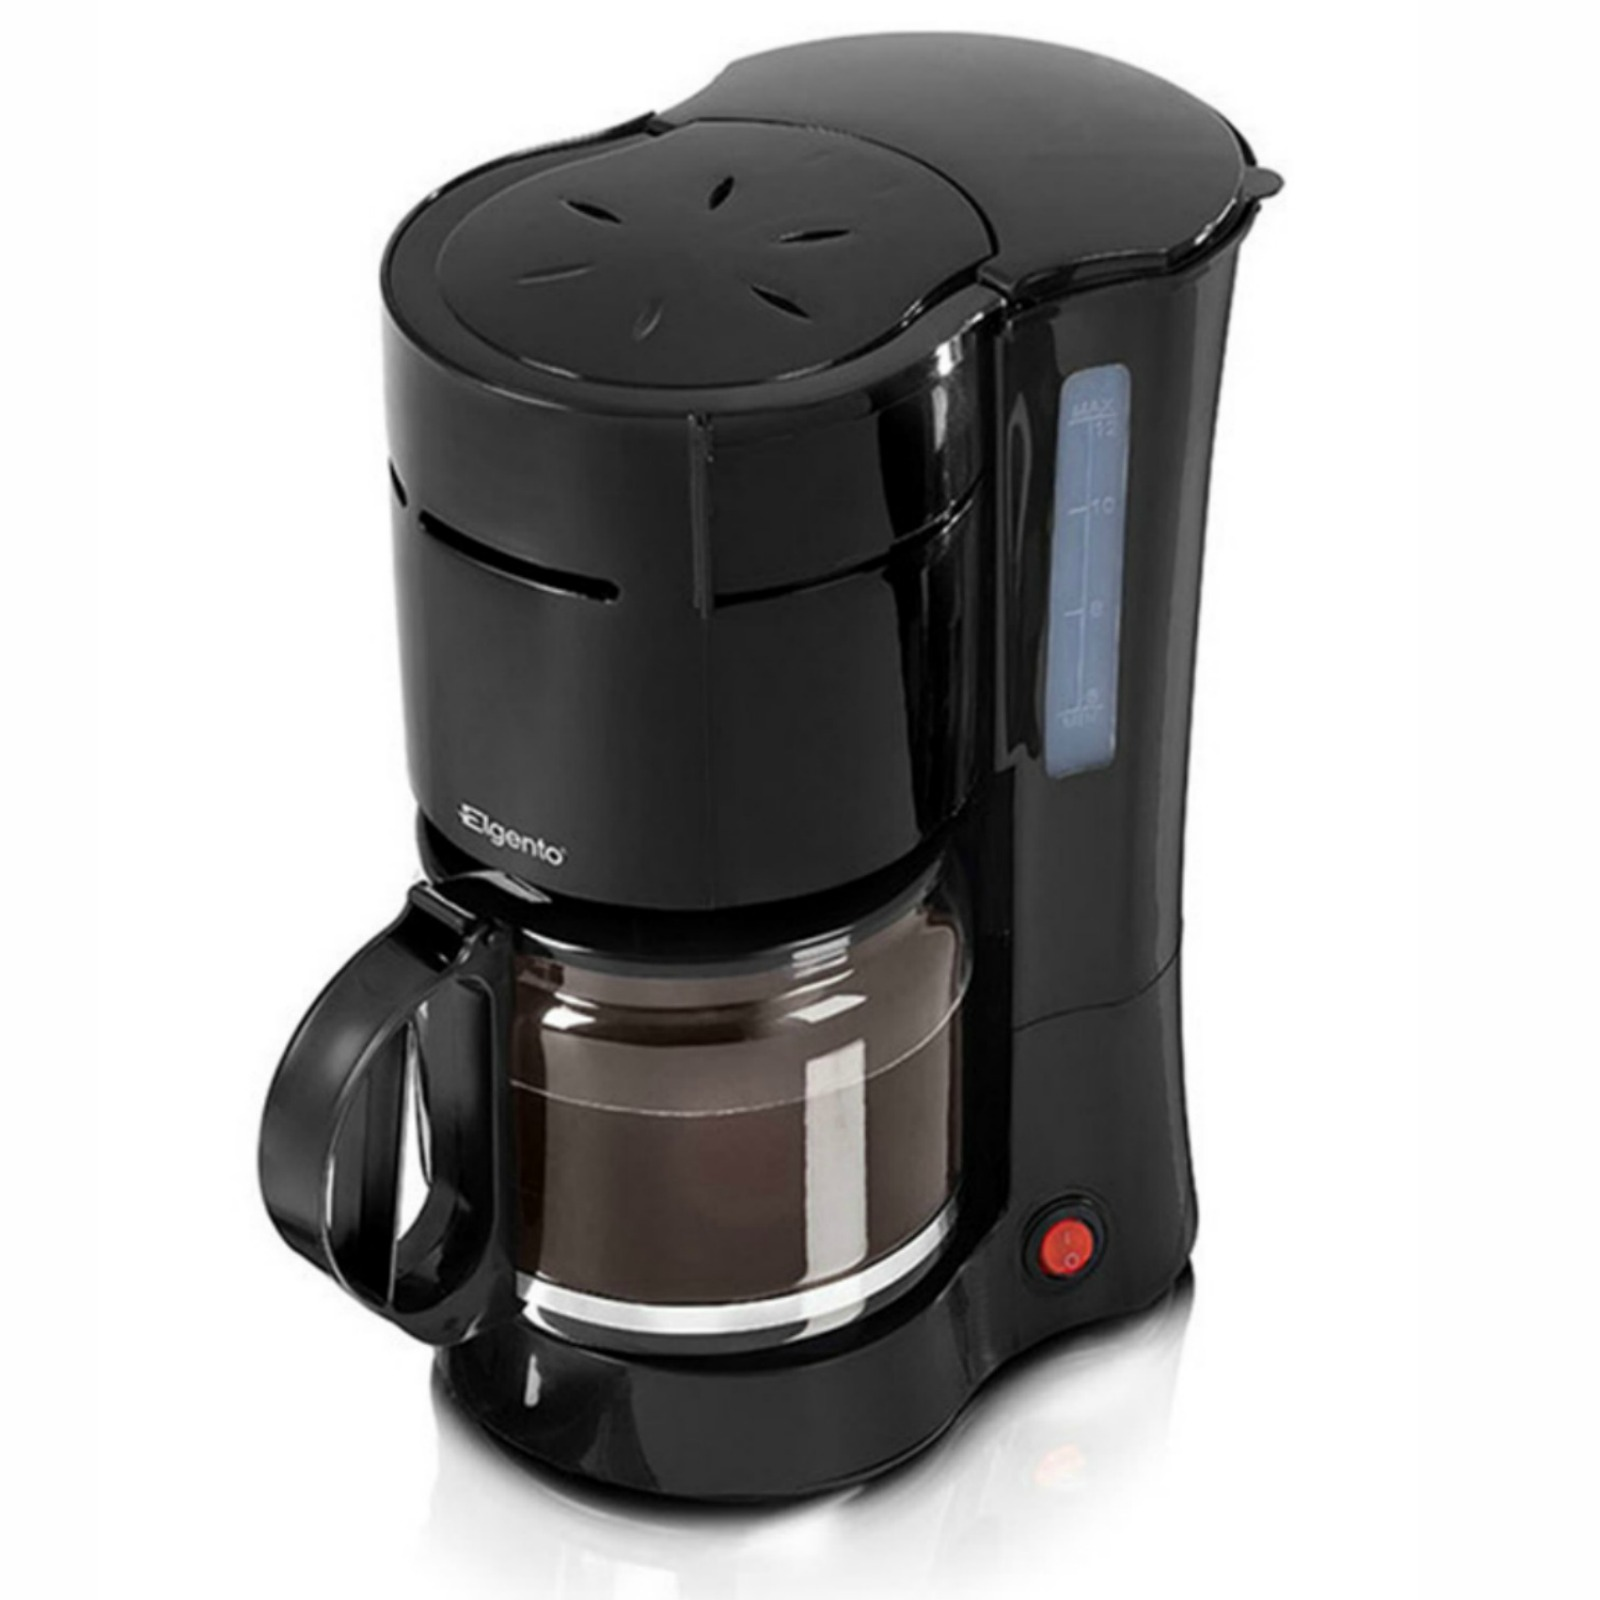 Elgento E13004 12 Cup Coffee Maker Black eBay